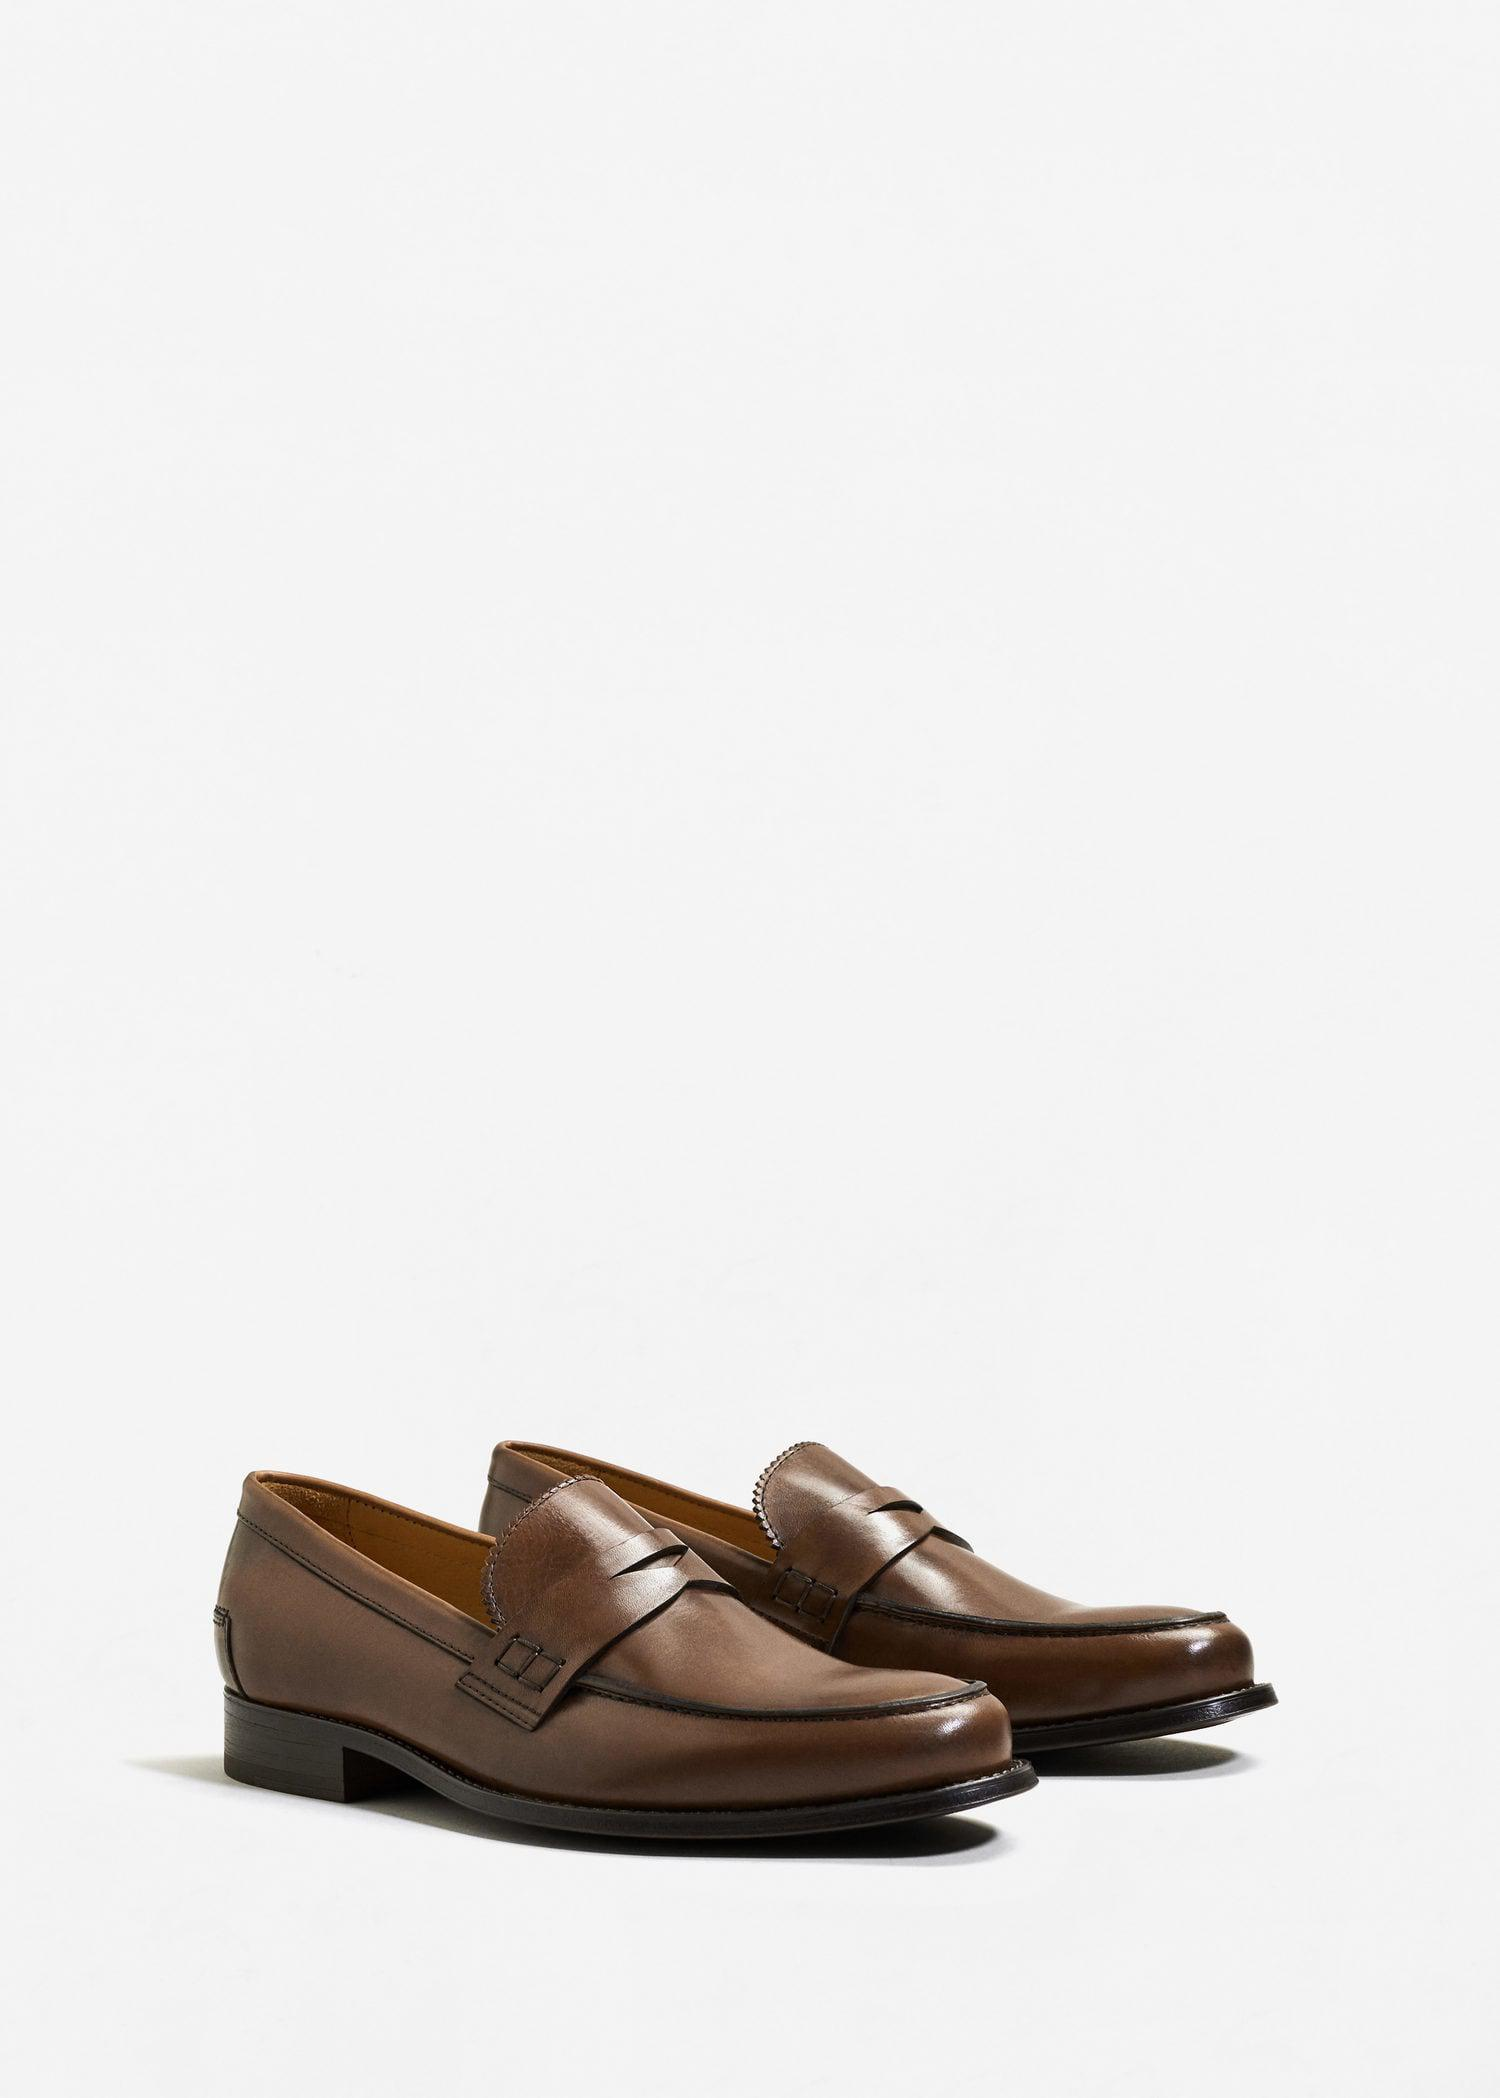 20148139c44 Lyst - Mango Leather Penny Loafers in Brown for Men